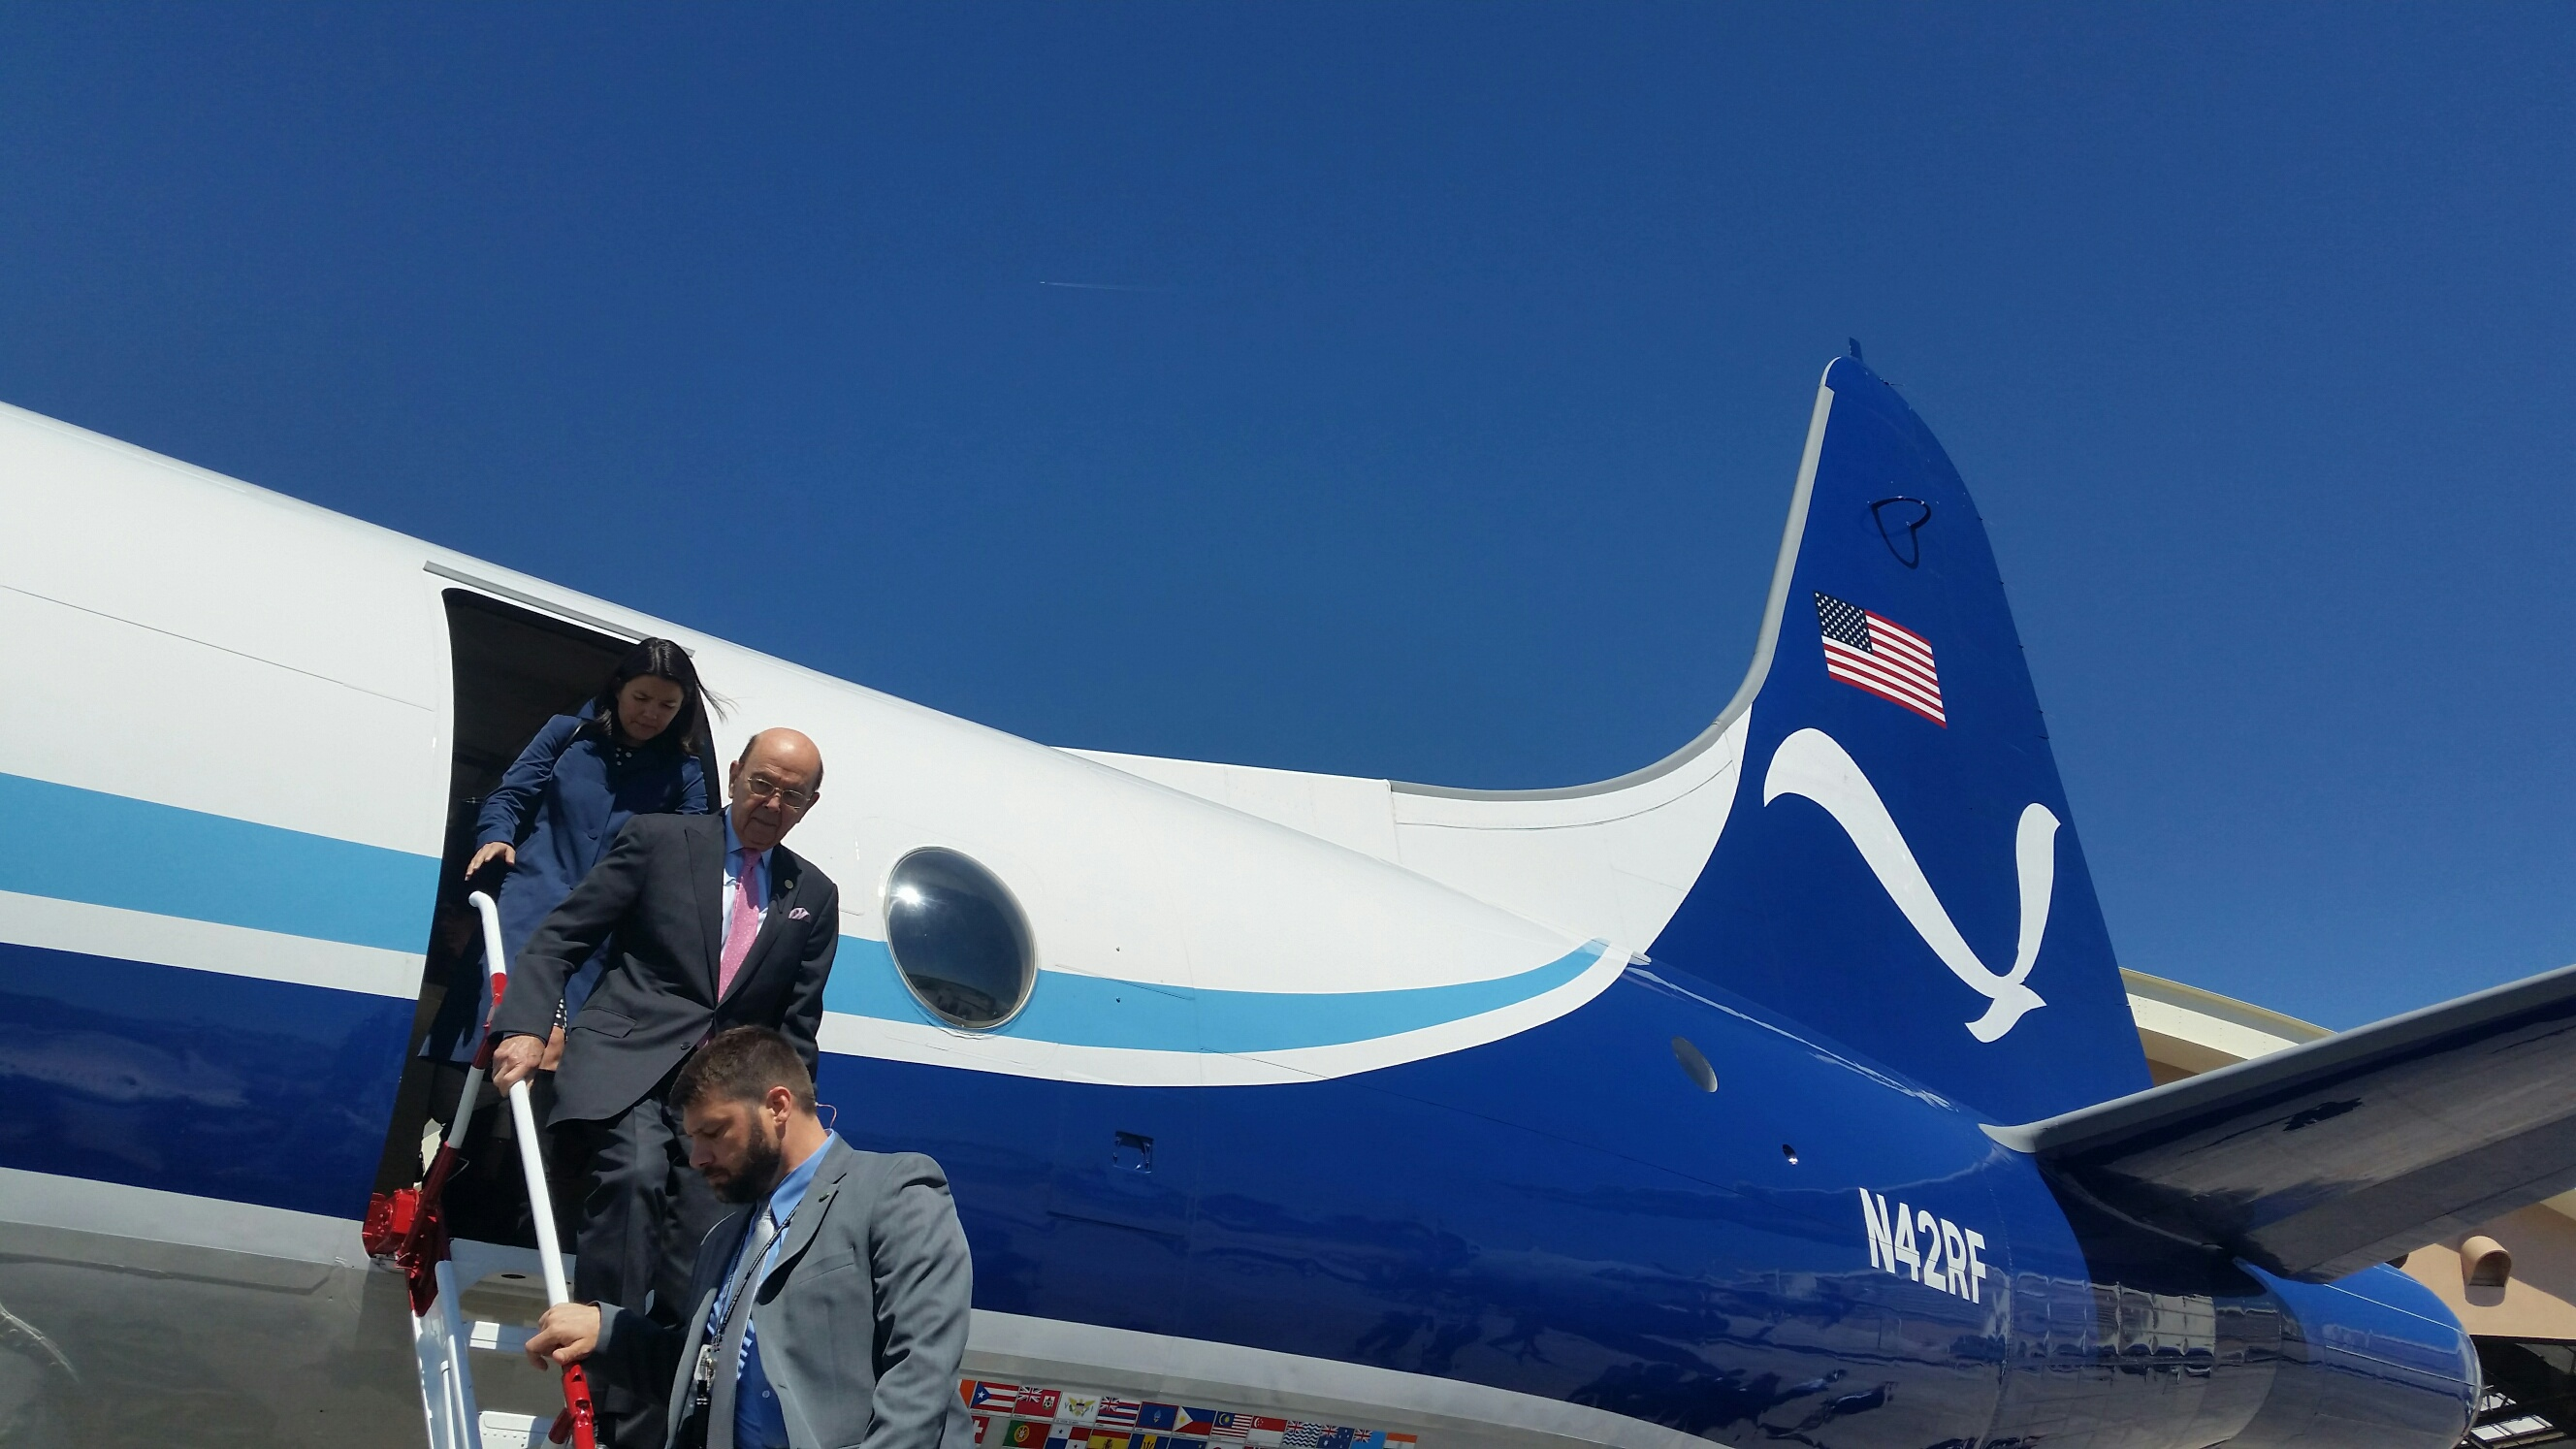 Commerce Secretary Wilbur Ross toured a hurricane hunter aircraft on Tuesday. (Niels Lesniewski/CQ Roll Call)